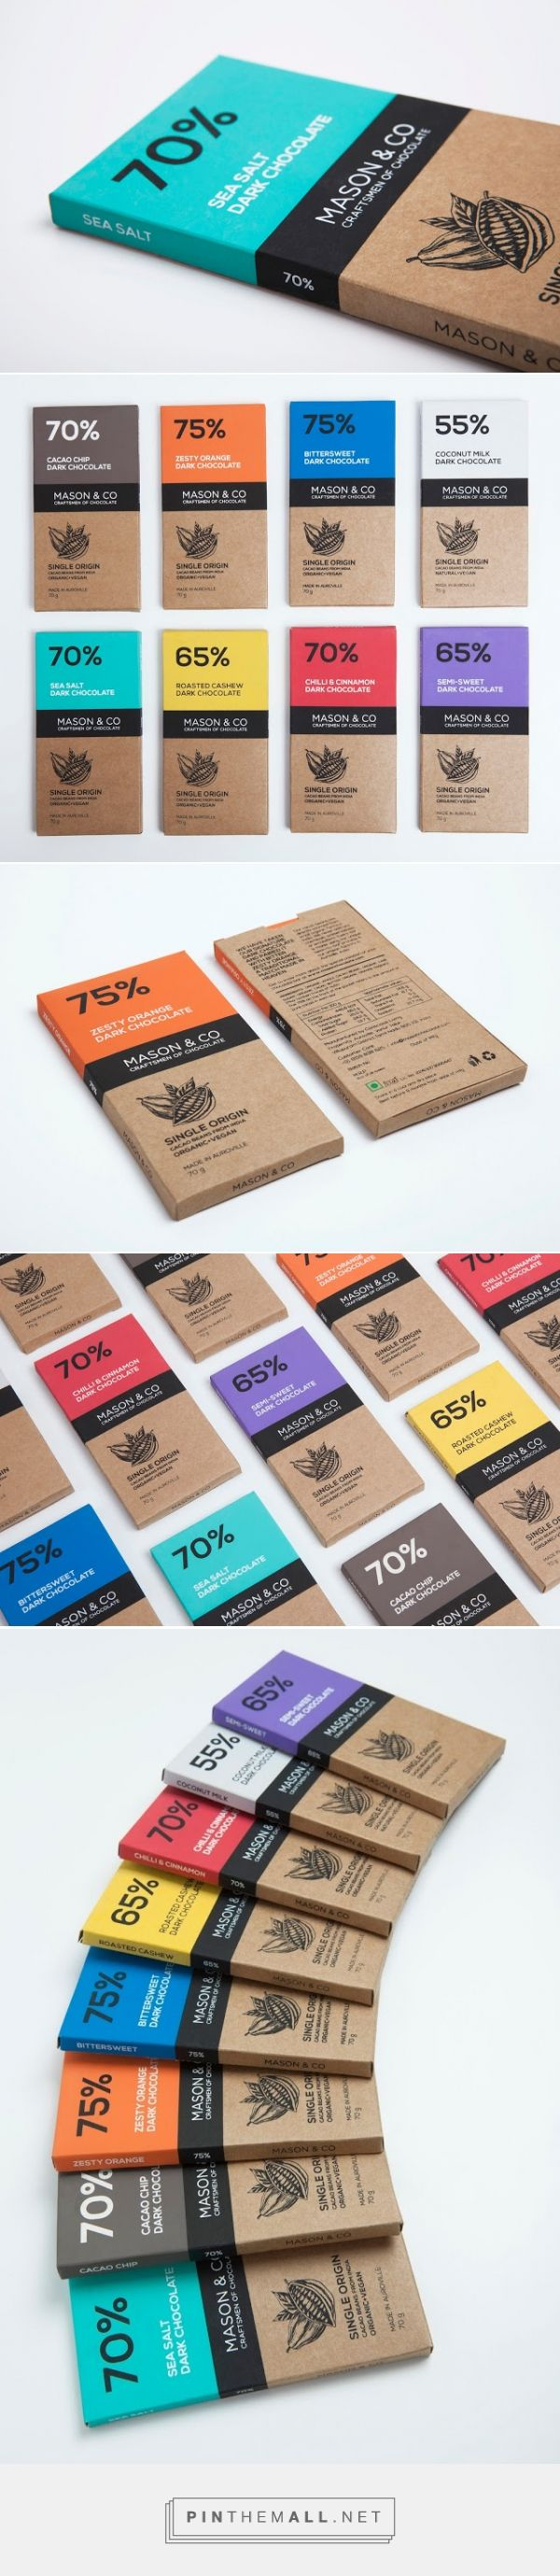 great cohesive packaging design for chocolate bars + color palette + illustration | simple and sweet | Mason & Co Chocolate Bars - The Dark Chocolate Collection on Packaging of the World - Creative Package Design Gallery http://www.packagingoftheworld.com/2014/12/mason-co-chocolate-bars-dark-chocolate.html